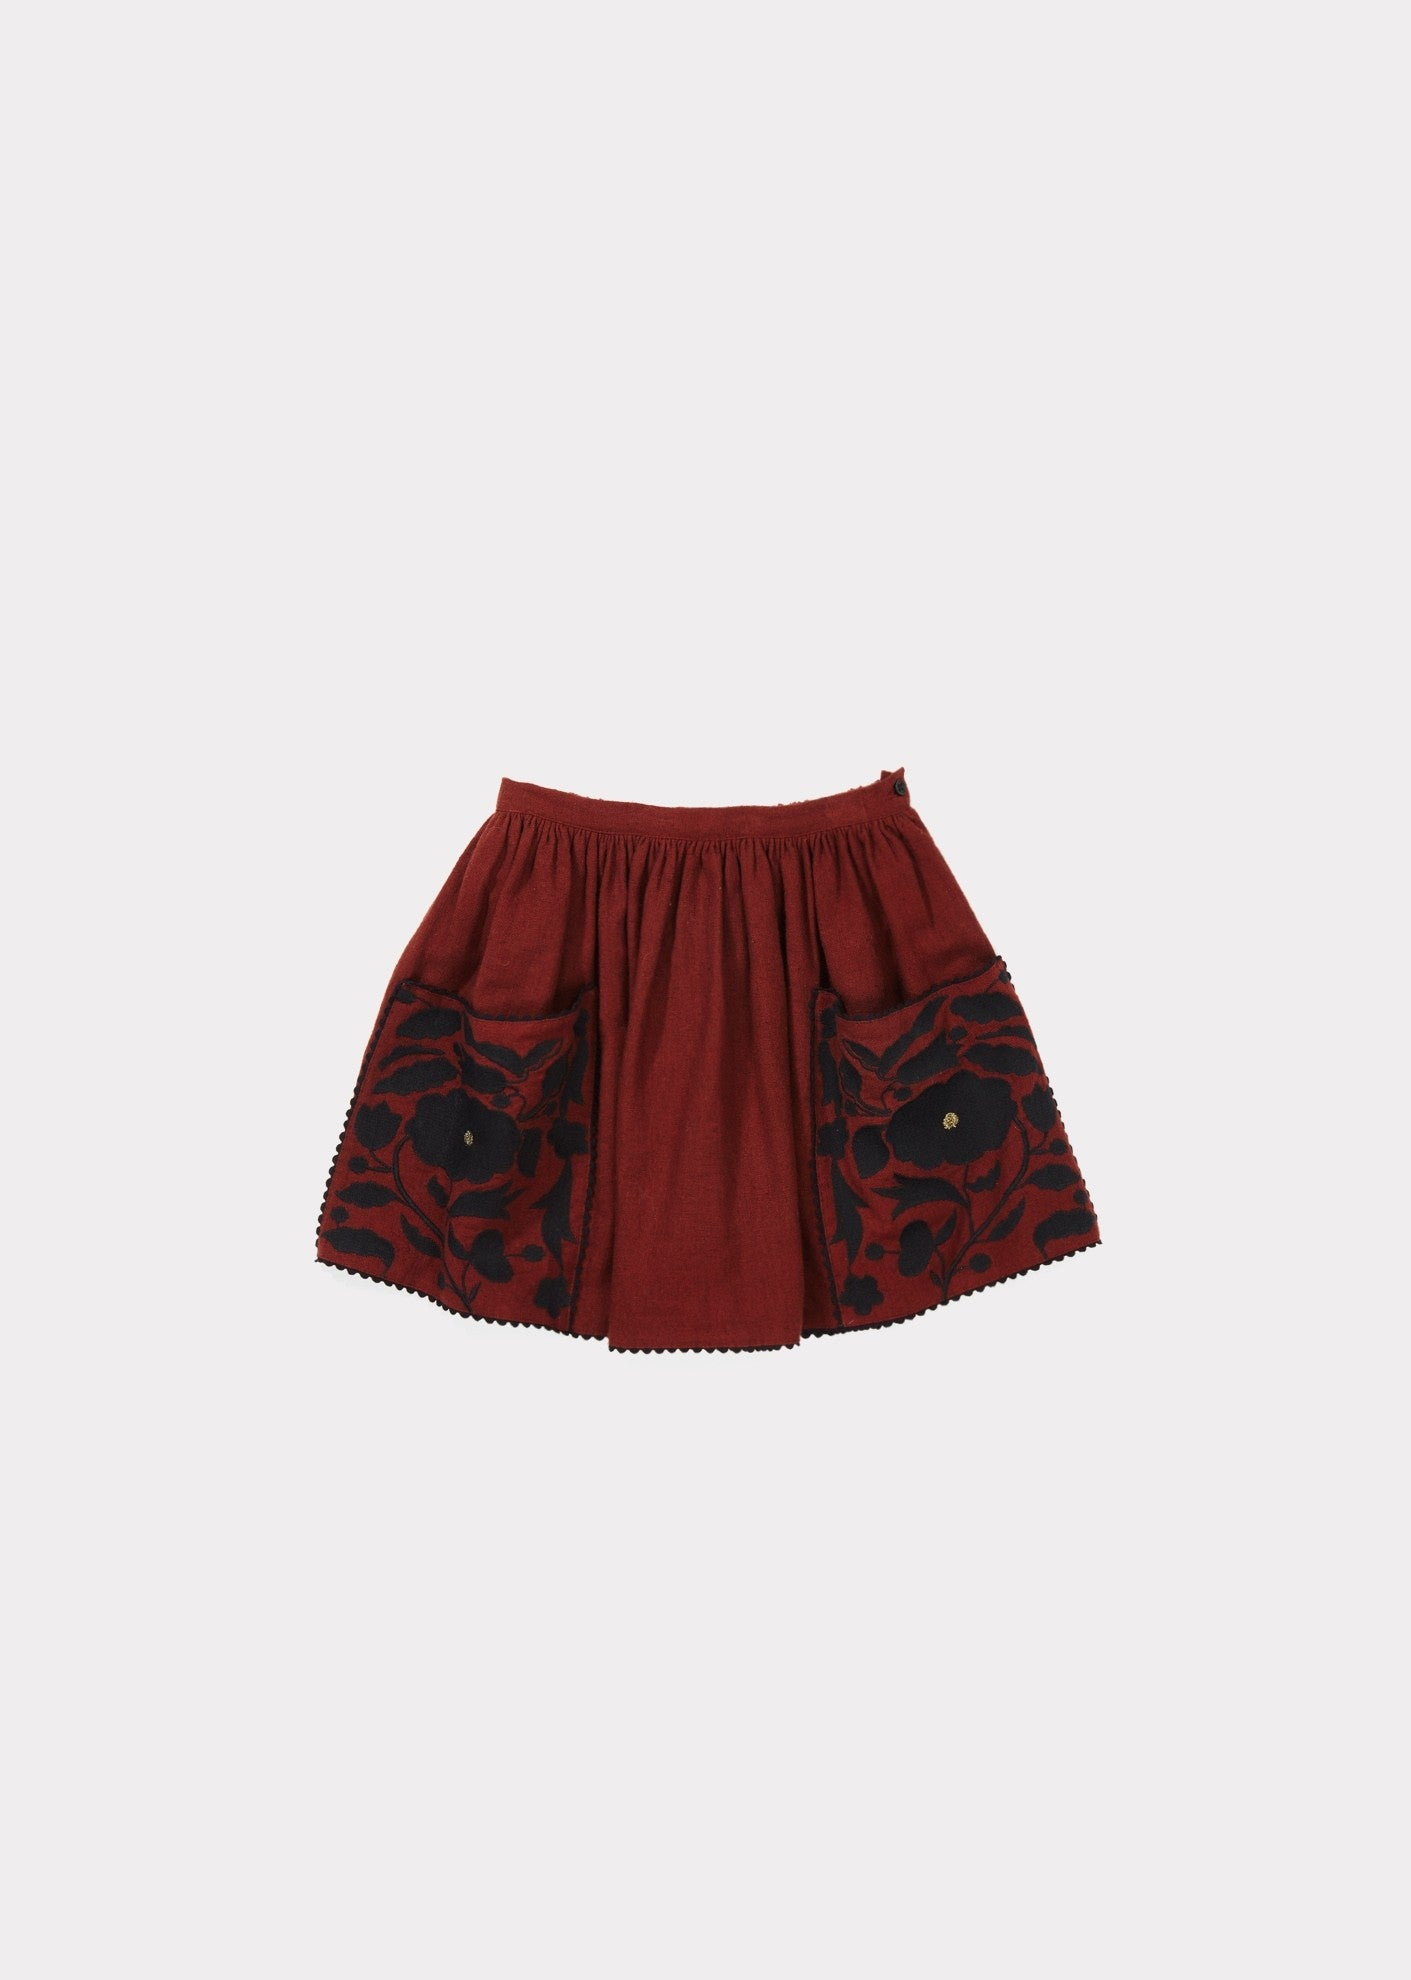 Cow Embroidered Skirt - Burnt Ochre